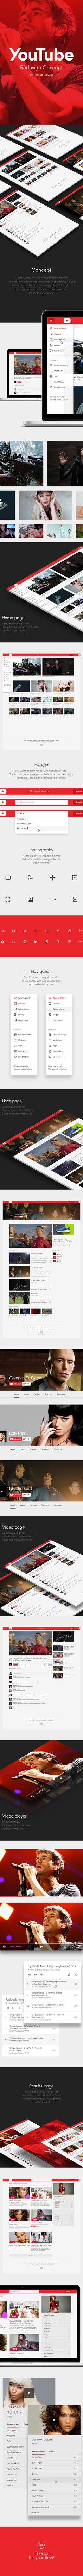 YouTube Redesign Concept on Behance